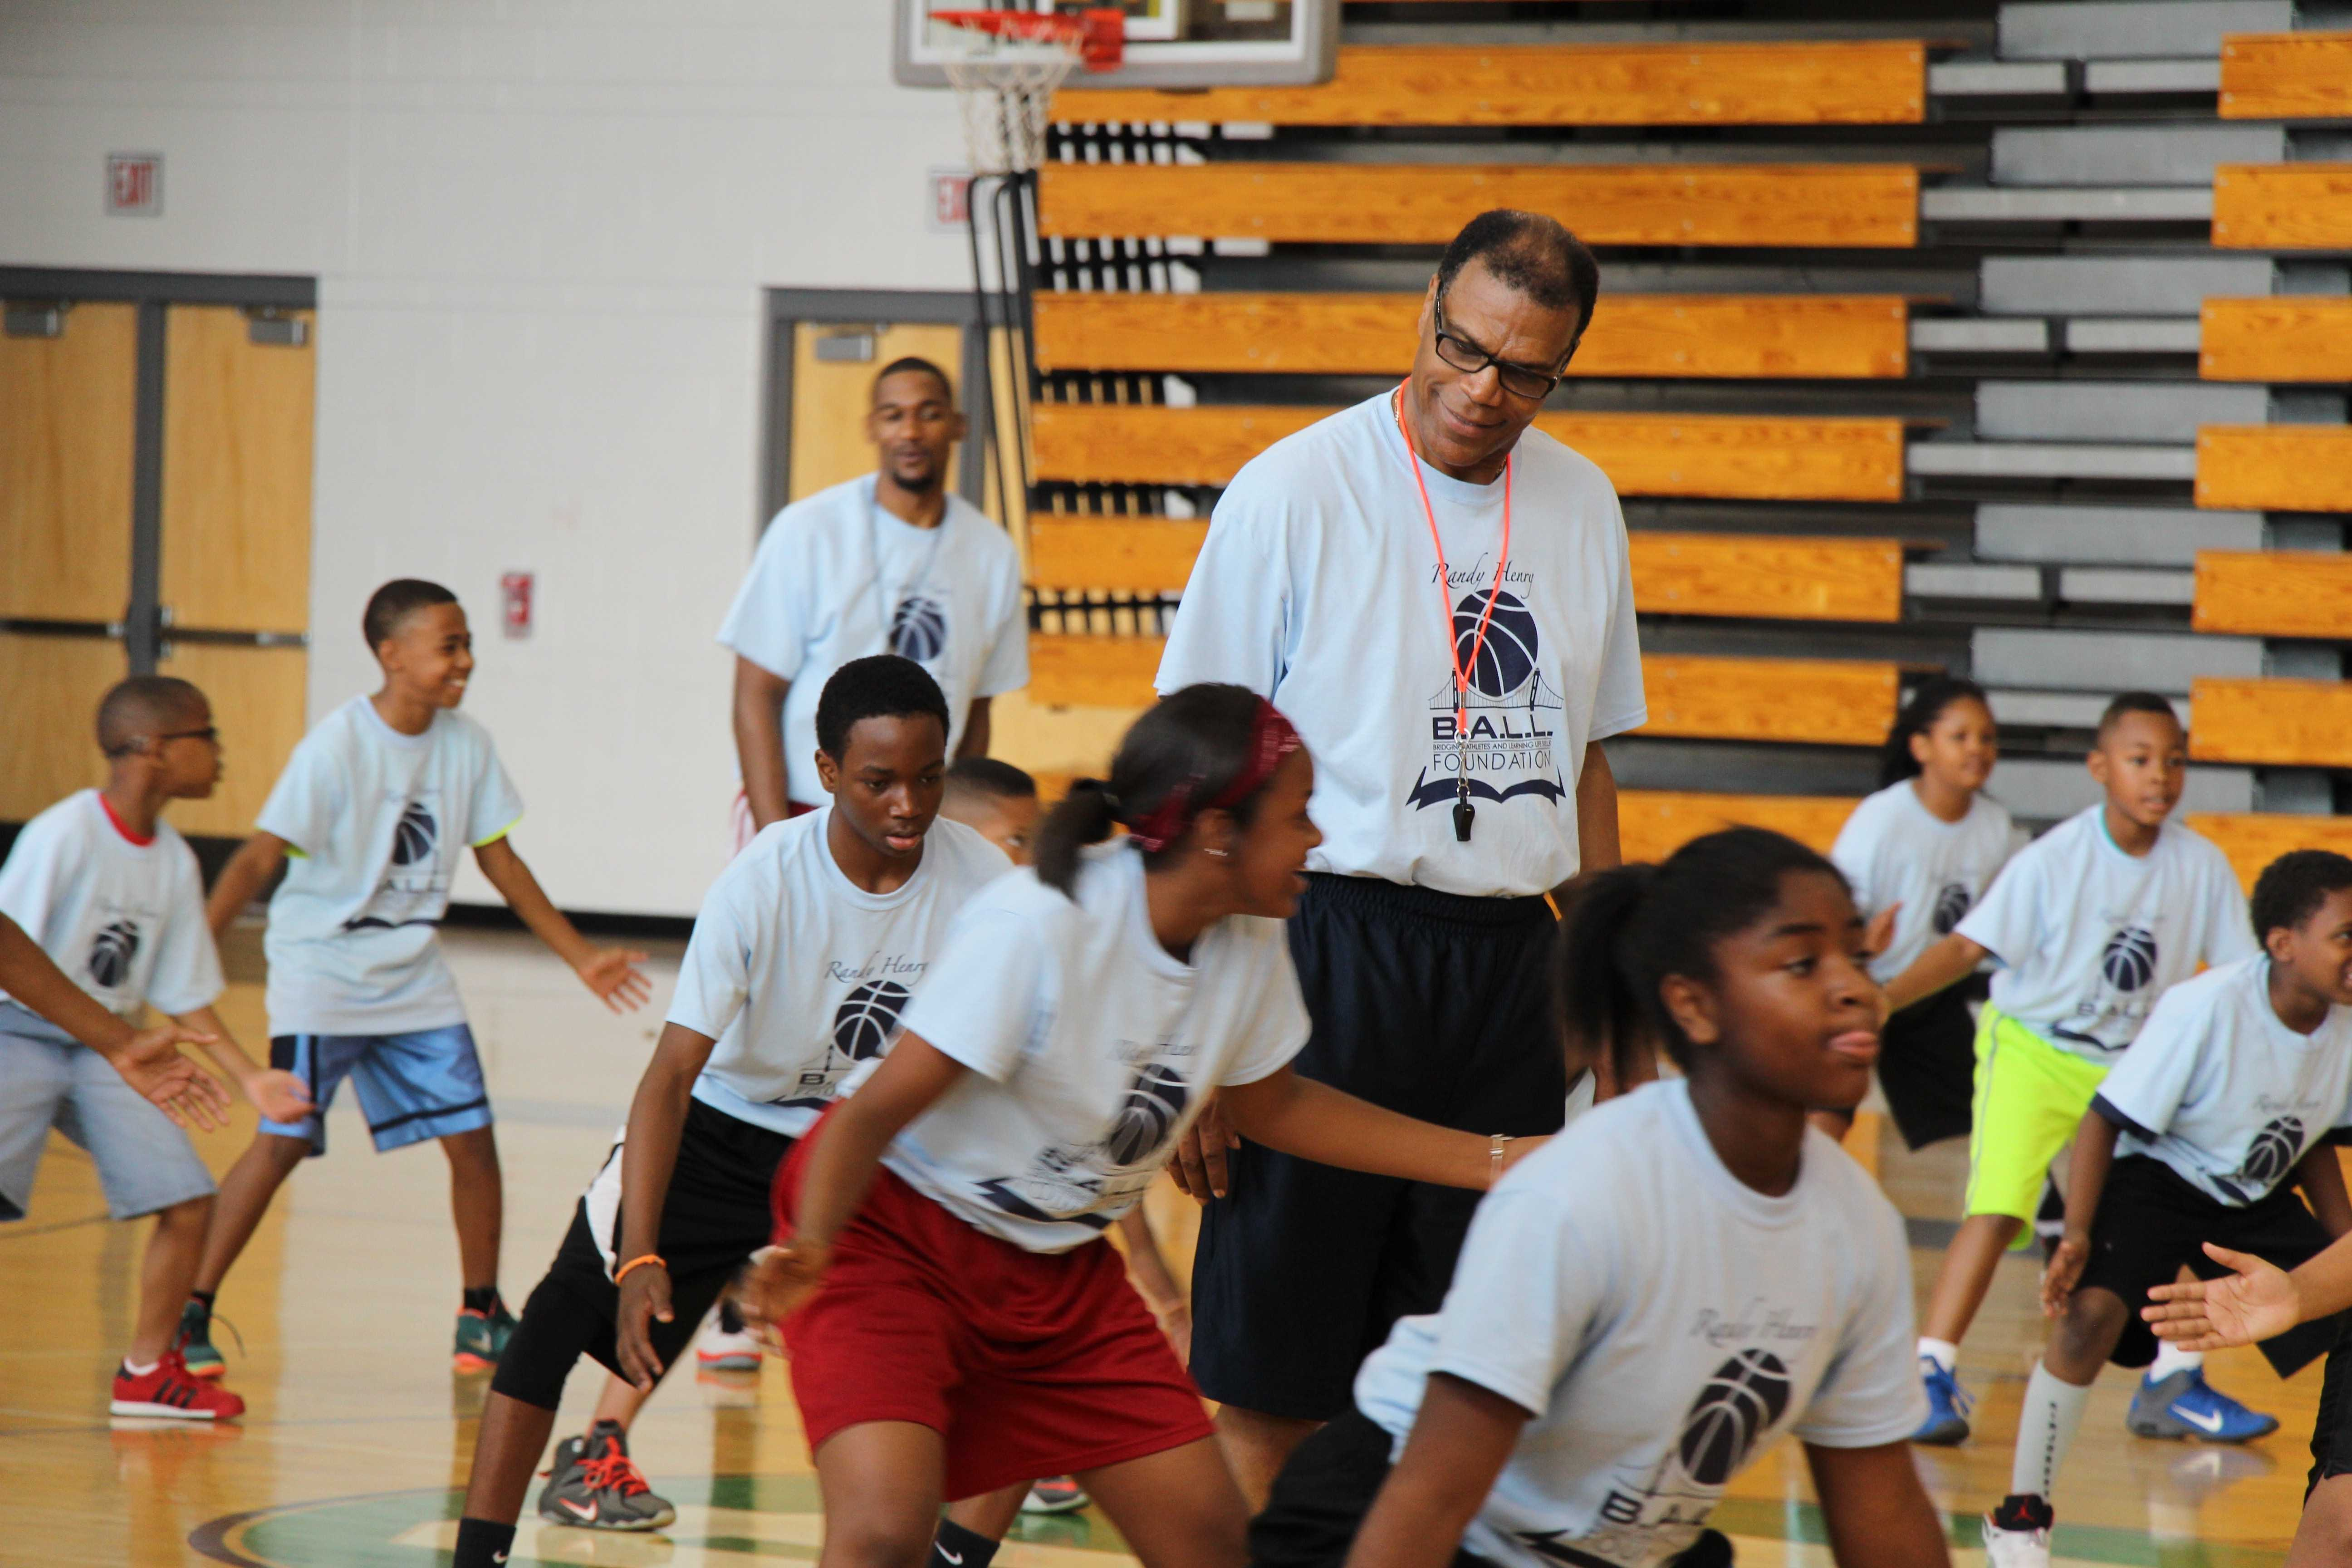 Bridging athletic and life skills – Schoolcraft Connection